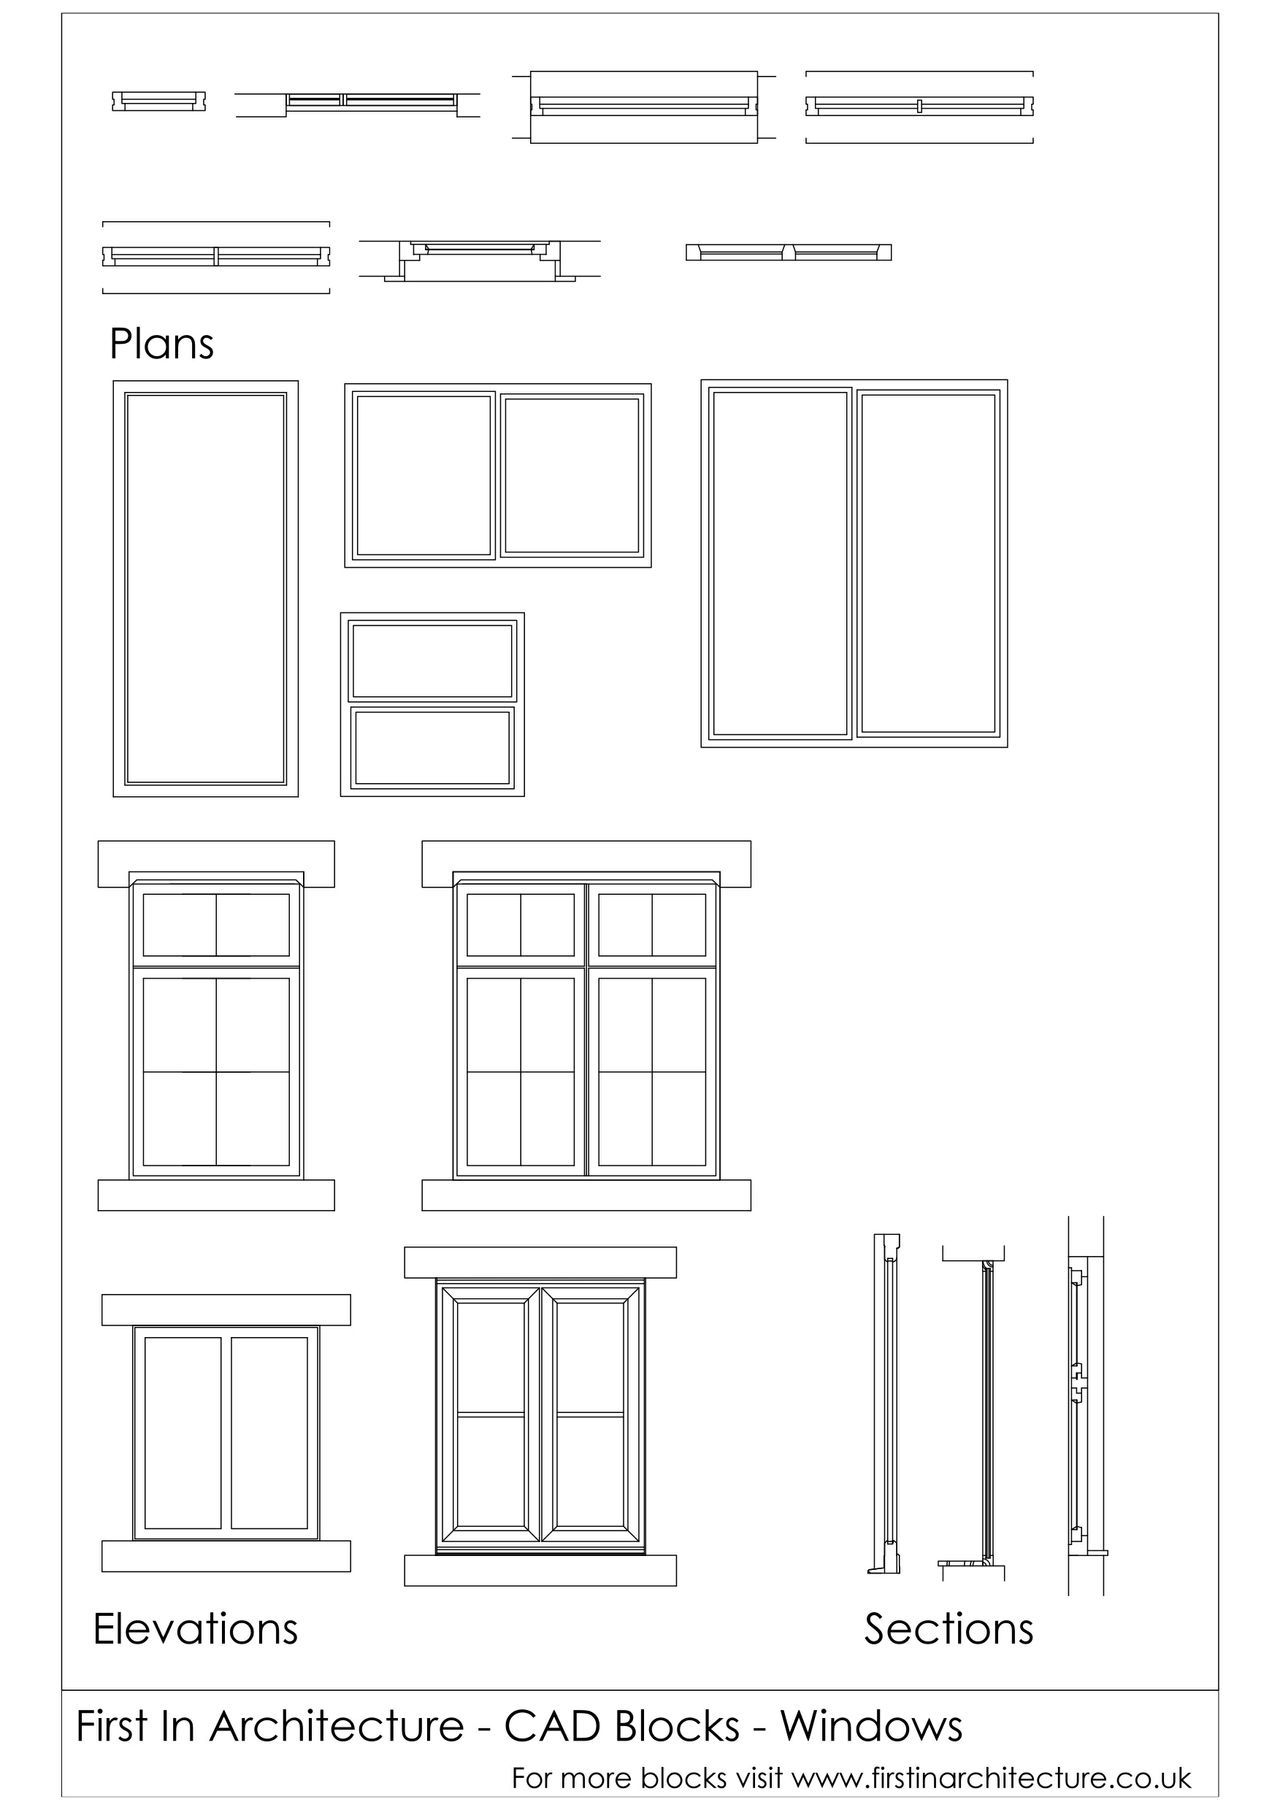 Cad blocks windows window detailed drawings and for Window elevation